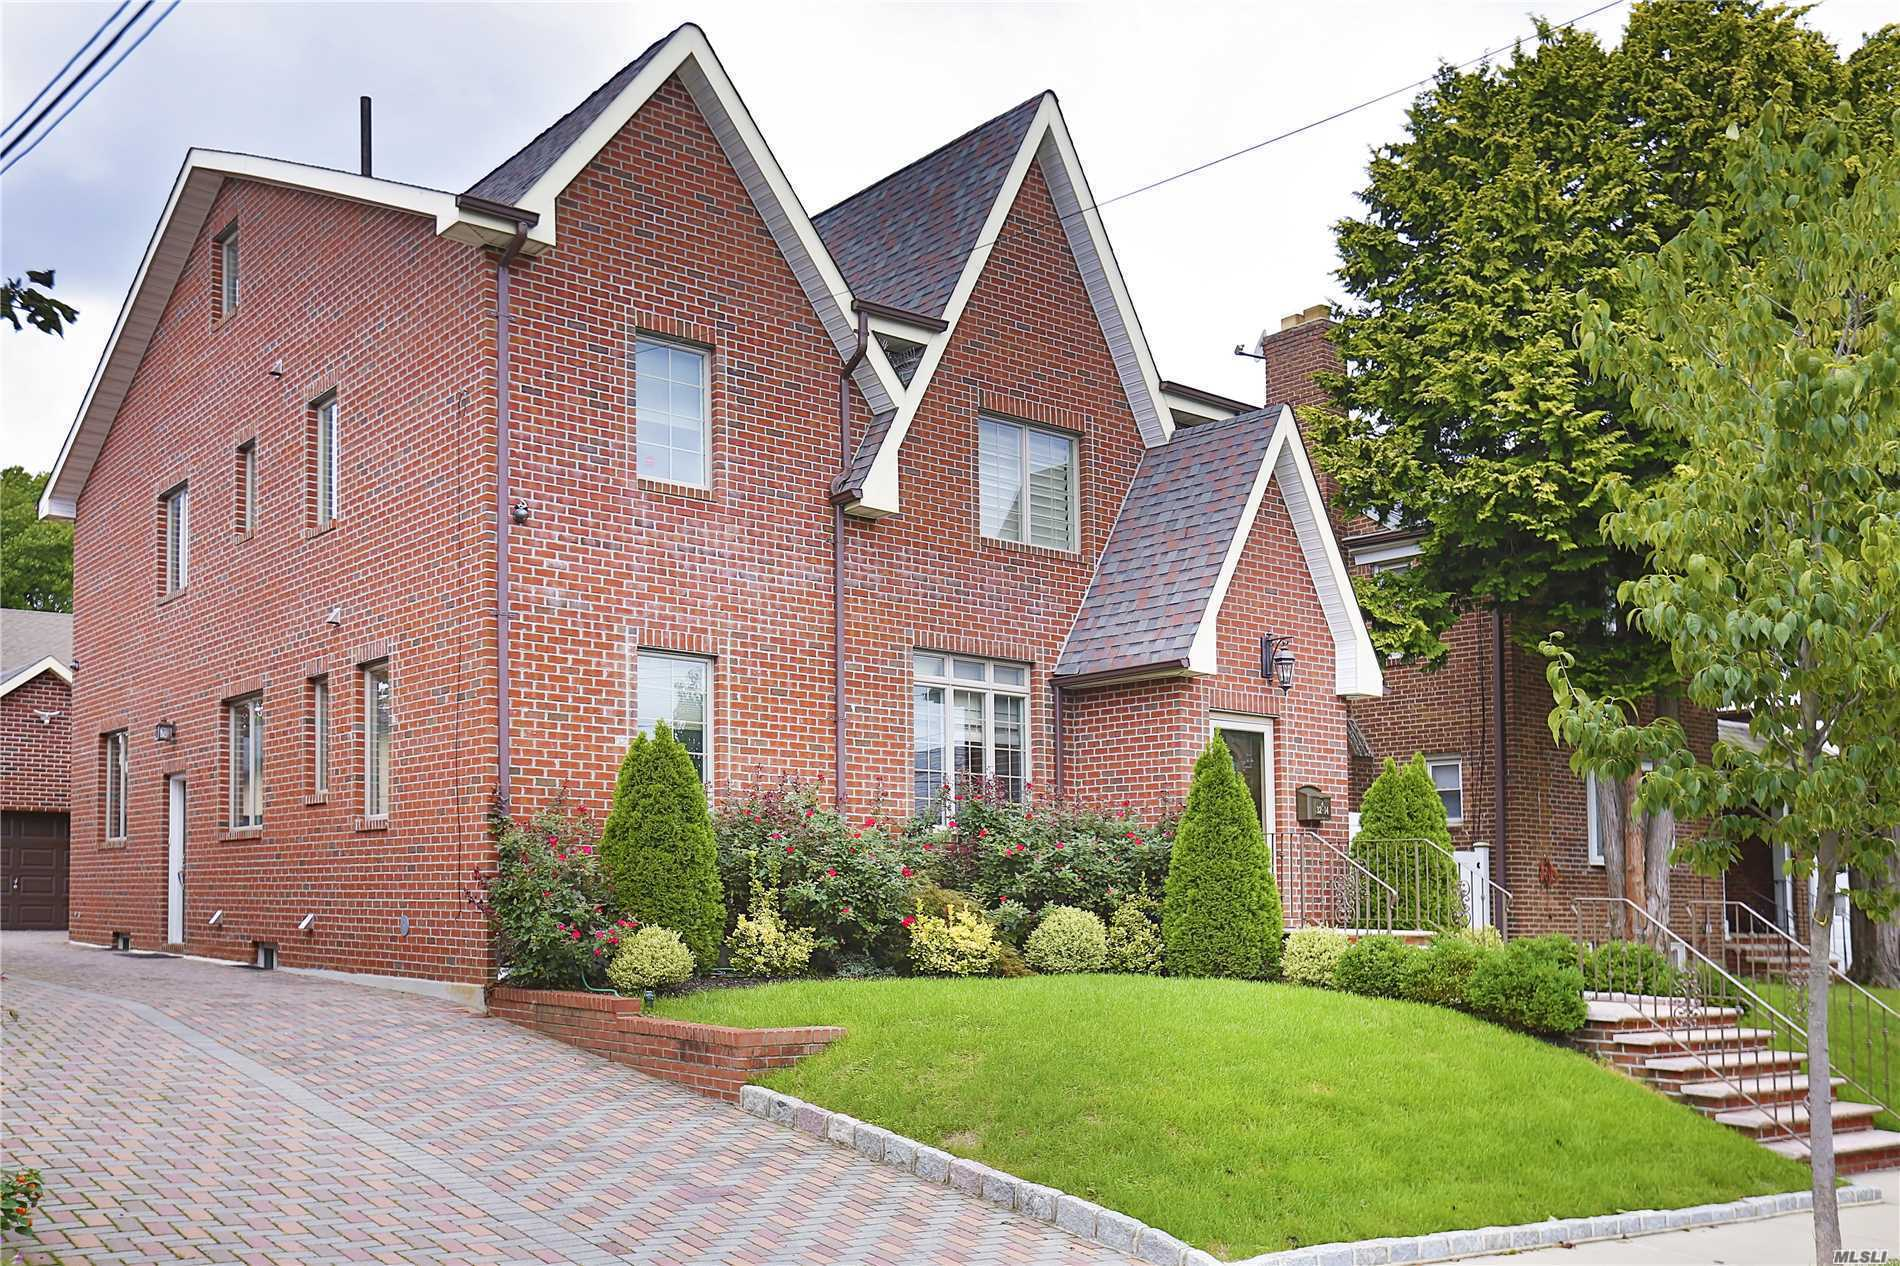 ***By Appointment Only***  Rare Find- Elegant, Luxurious And Bright Custom Built 5 Bedroom Tudor With All Brick In The Heart Of Flushing, Mins To Lirr. Spacious Galore 4200 Square Feet. Solid Built, Features 2 Car Garage, Finished Basement & Attic, Anderson Windows, Energy Efficient Incl. Spray Foam Insulation, Indusparquent Brazilian Flooring, High-End Kitchen And Bath Incl. Ge Monogram Appliances, Ronbow, Toto, Kohler, And Grohe. Must See! You Don't Want To Miss This One!!!